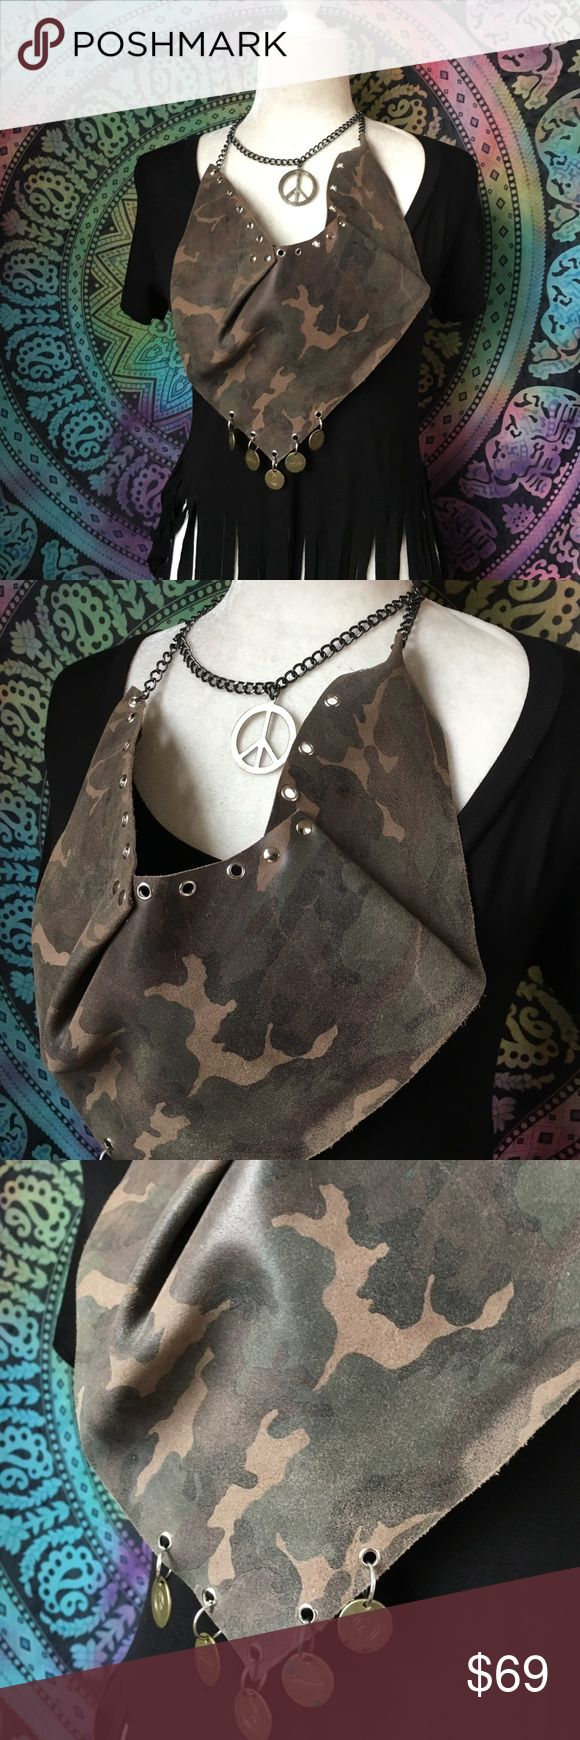 Leather camo necklace scarf Peace not war leather camo scarf. This was an art inspired piece for my collection. Mixing camo with peace signs in a statement of peace not war. One of a kind all handmade. Accessories Scarves & Wraps